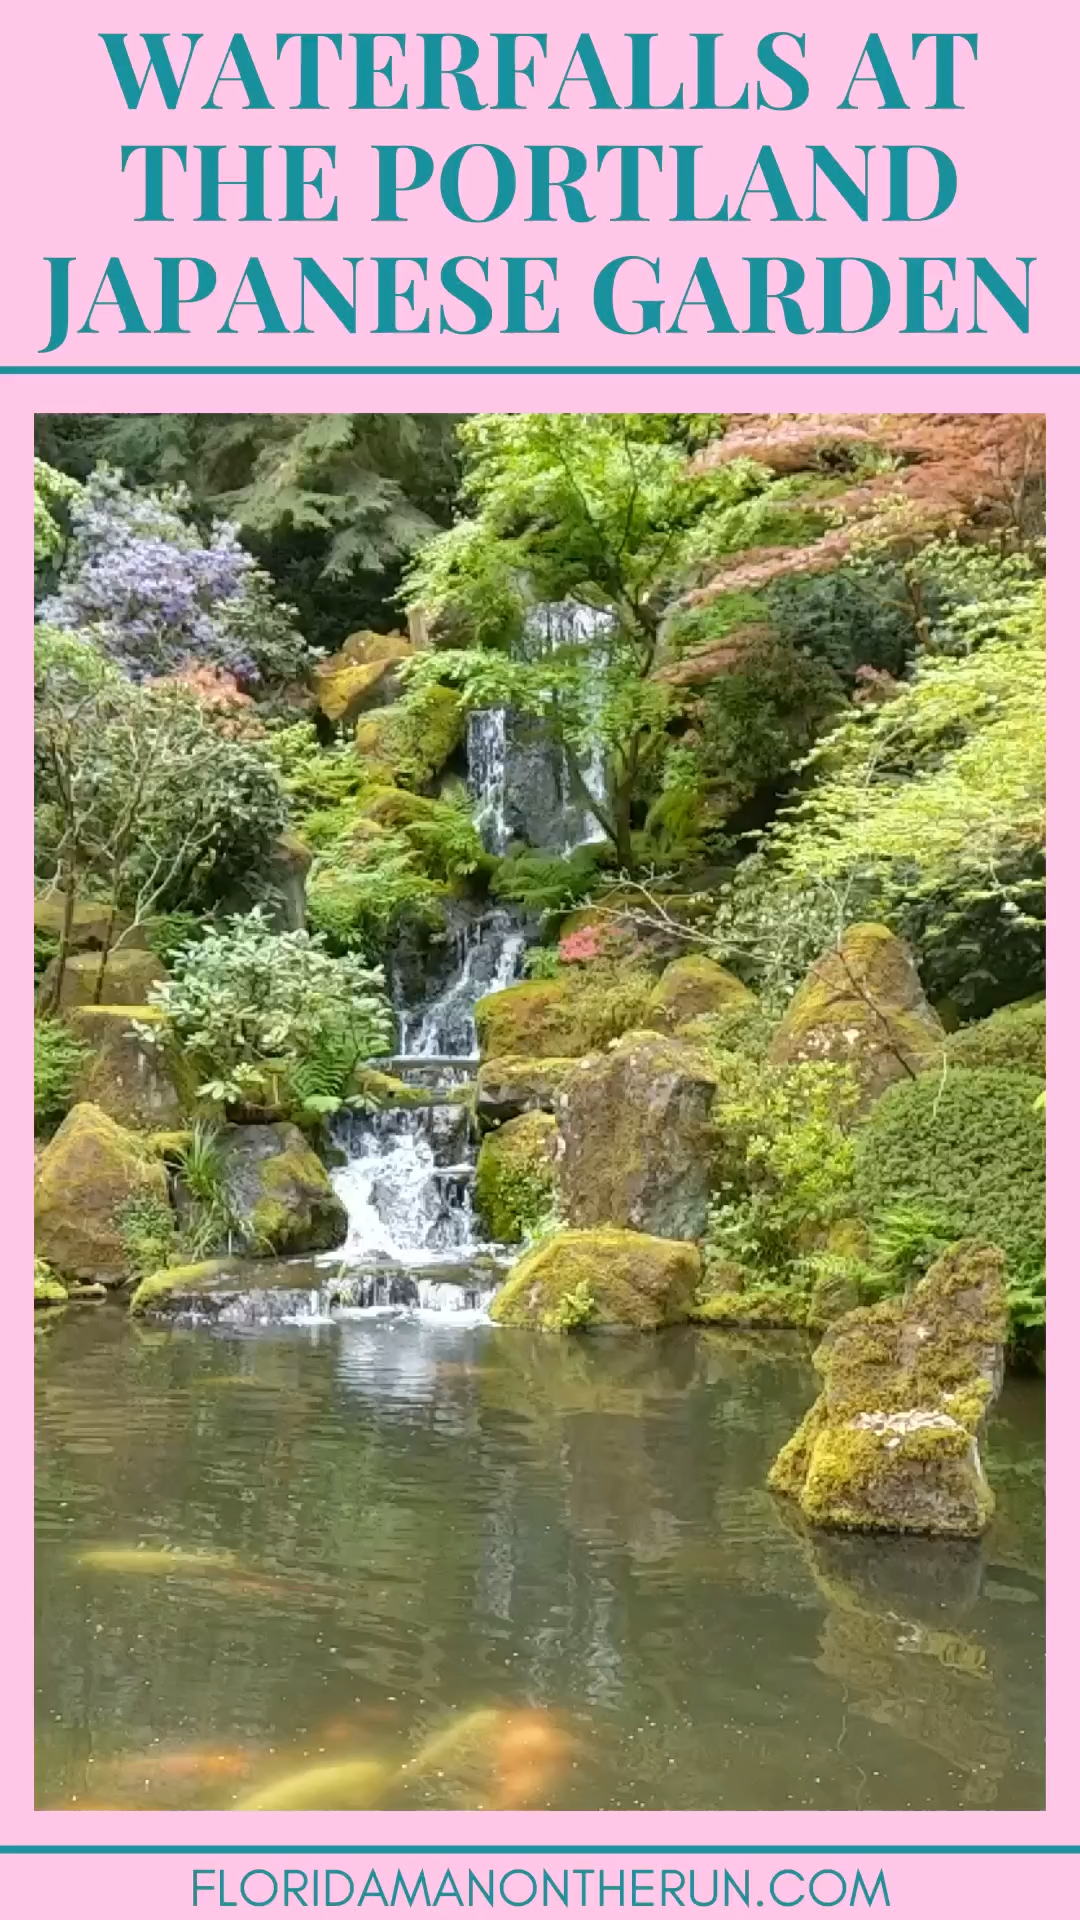 The Portland Japanese Garden is a wonderful oasis just outside of Portland's downtown. Take a peaceful stroll through the garden, then continue to explore the Rose Garden or Portland Zoo just outside. #tranquilgarden #japanesegarden #pdx #pnw #exploreoregon